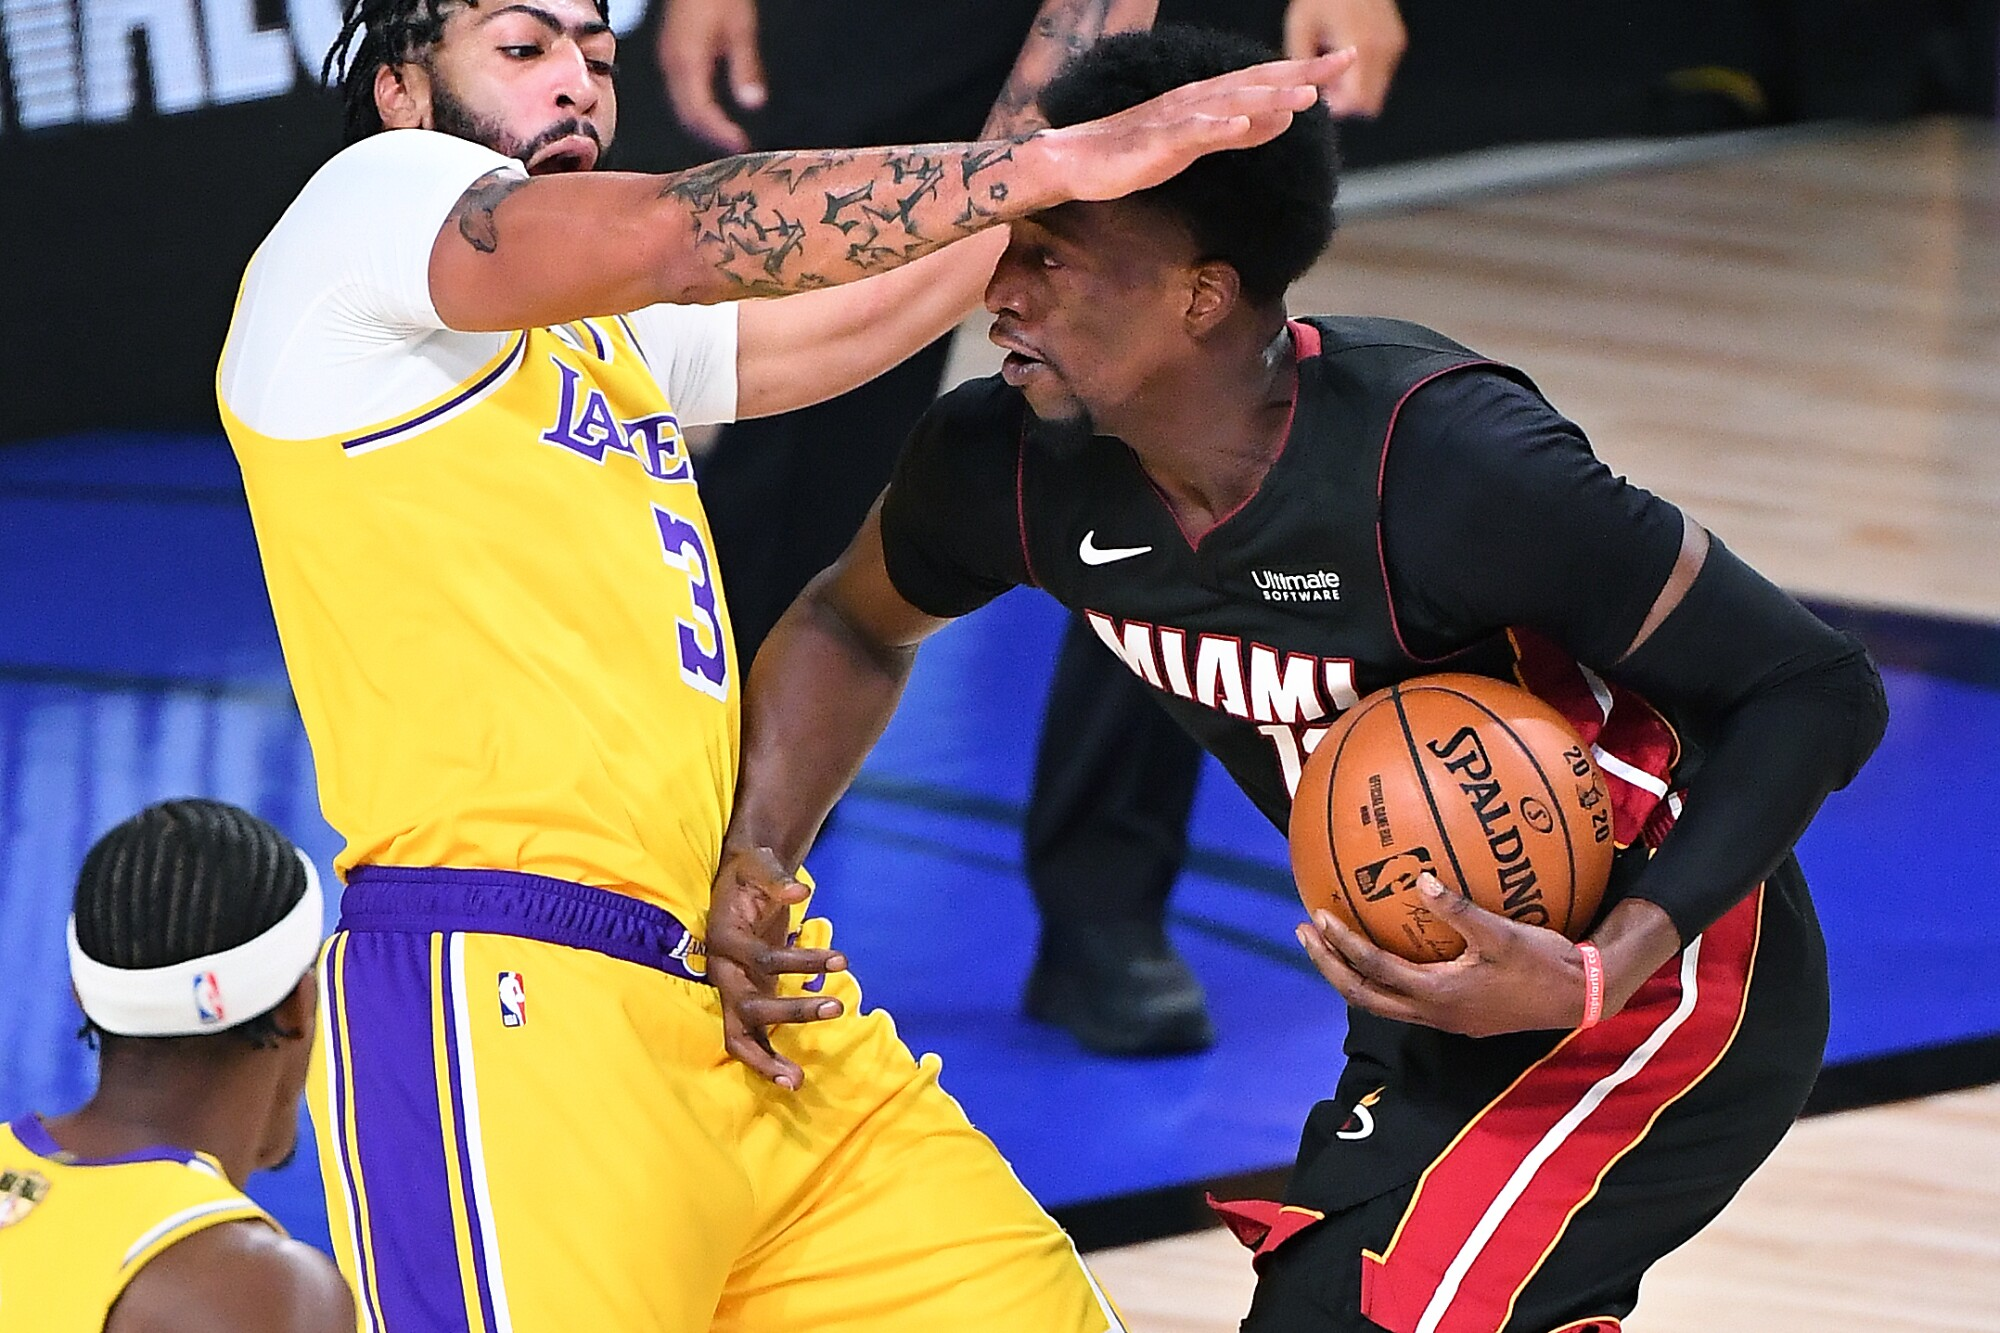 Lakers forward Anthony Davis takes a charge from Heat center Bam Adebayo during Game 4.